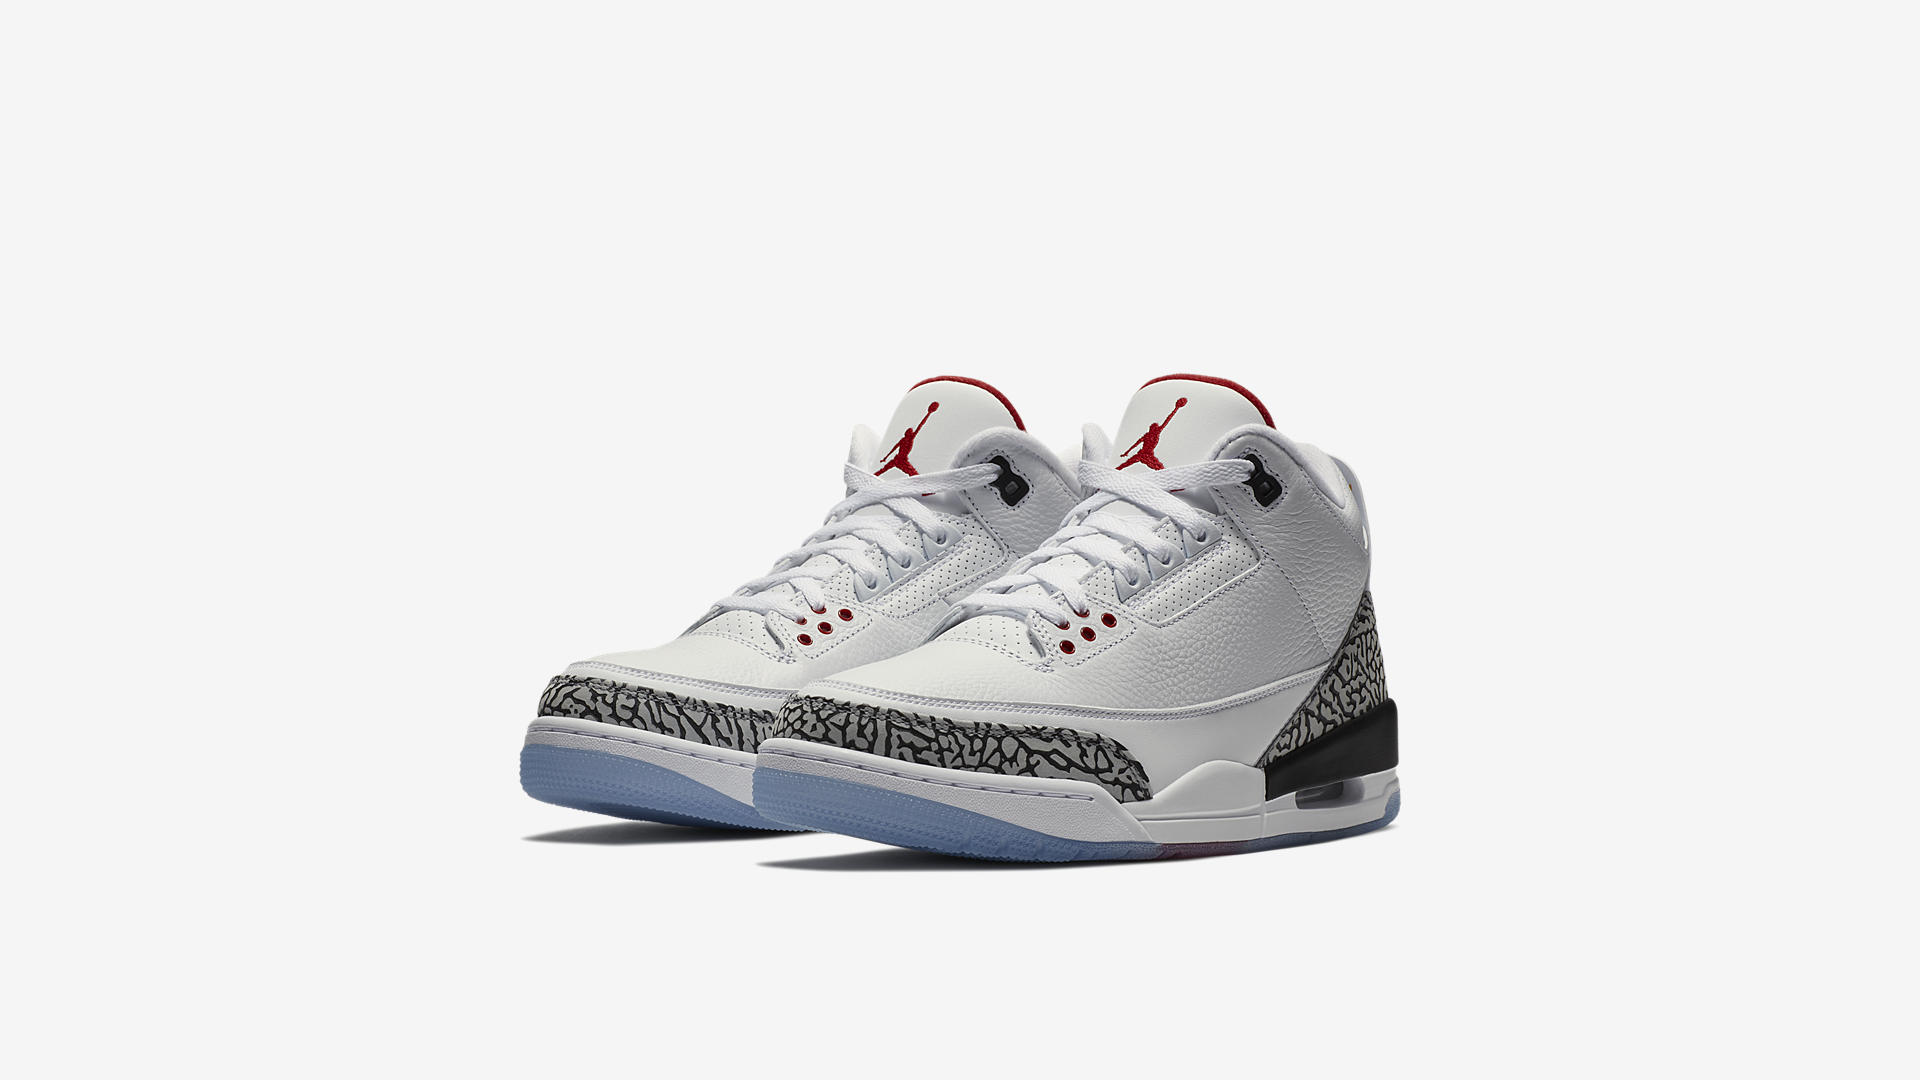 923096 101 Air Jordan 3 Free Throw Line 1